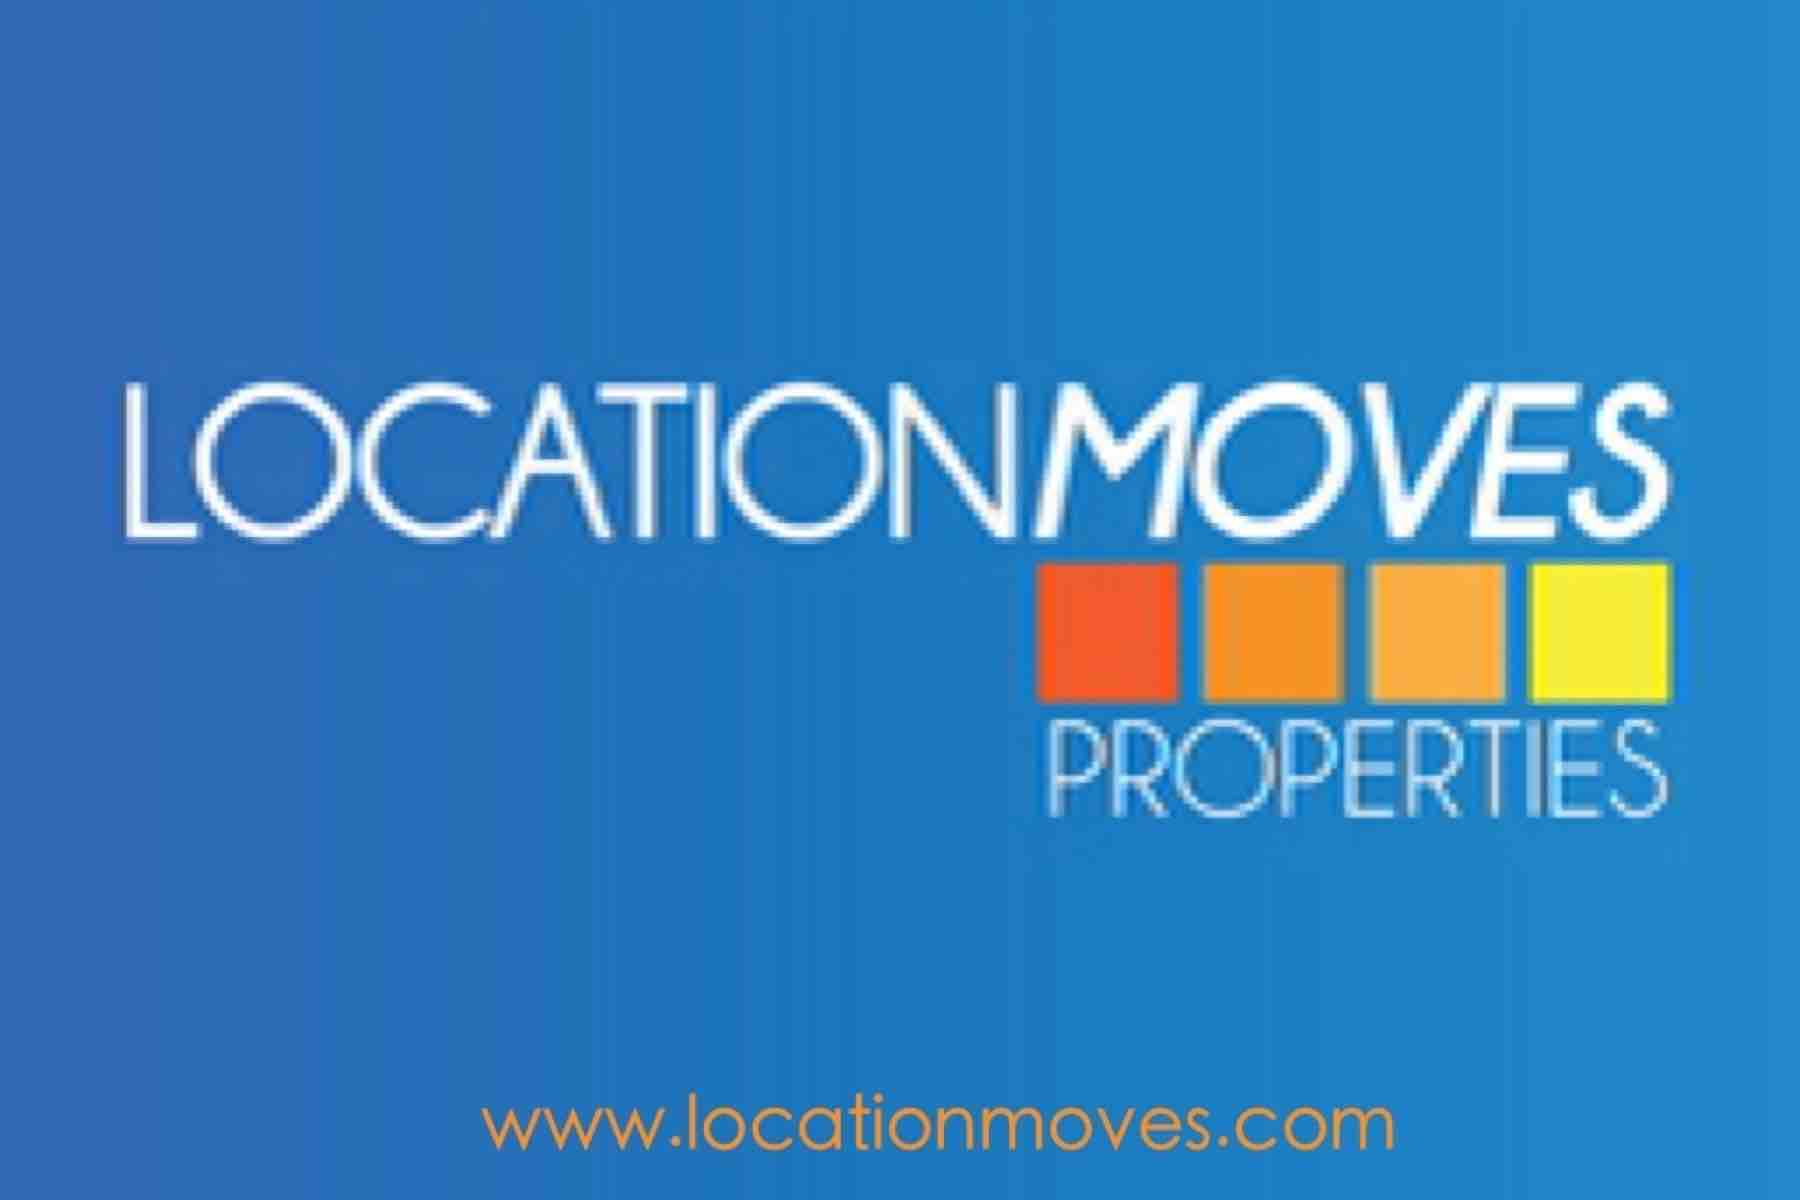 Location Moves